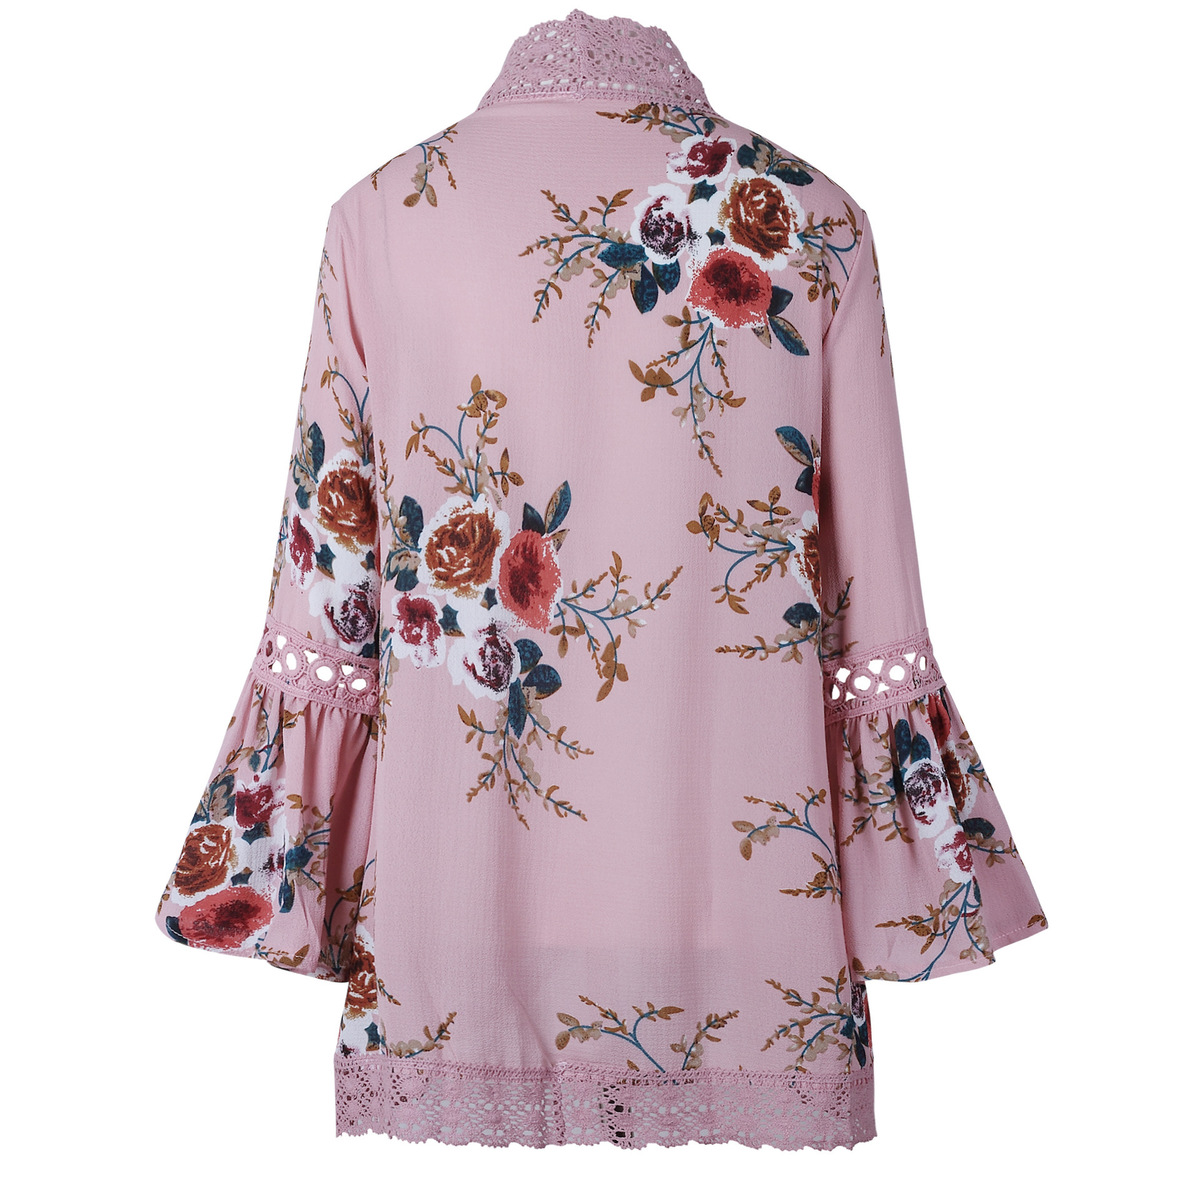 HTB1mV1KEXGWBuNjy0Fbq6z4sXXao Women Plus Size Loose Casual Basic Jackets Female 2018 Autumn Long Flare Sleeve Floral Print Outwear Coat Open Stitch Clothing